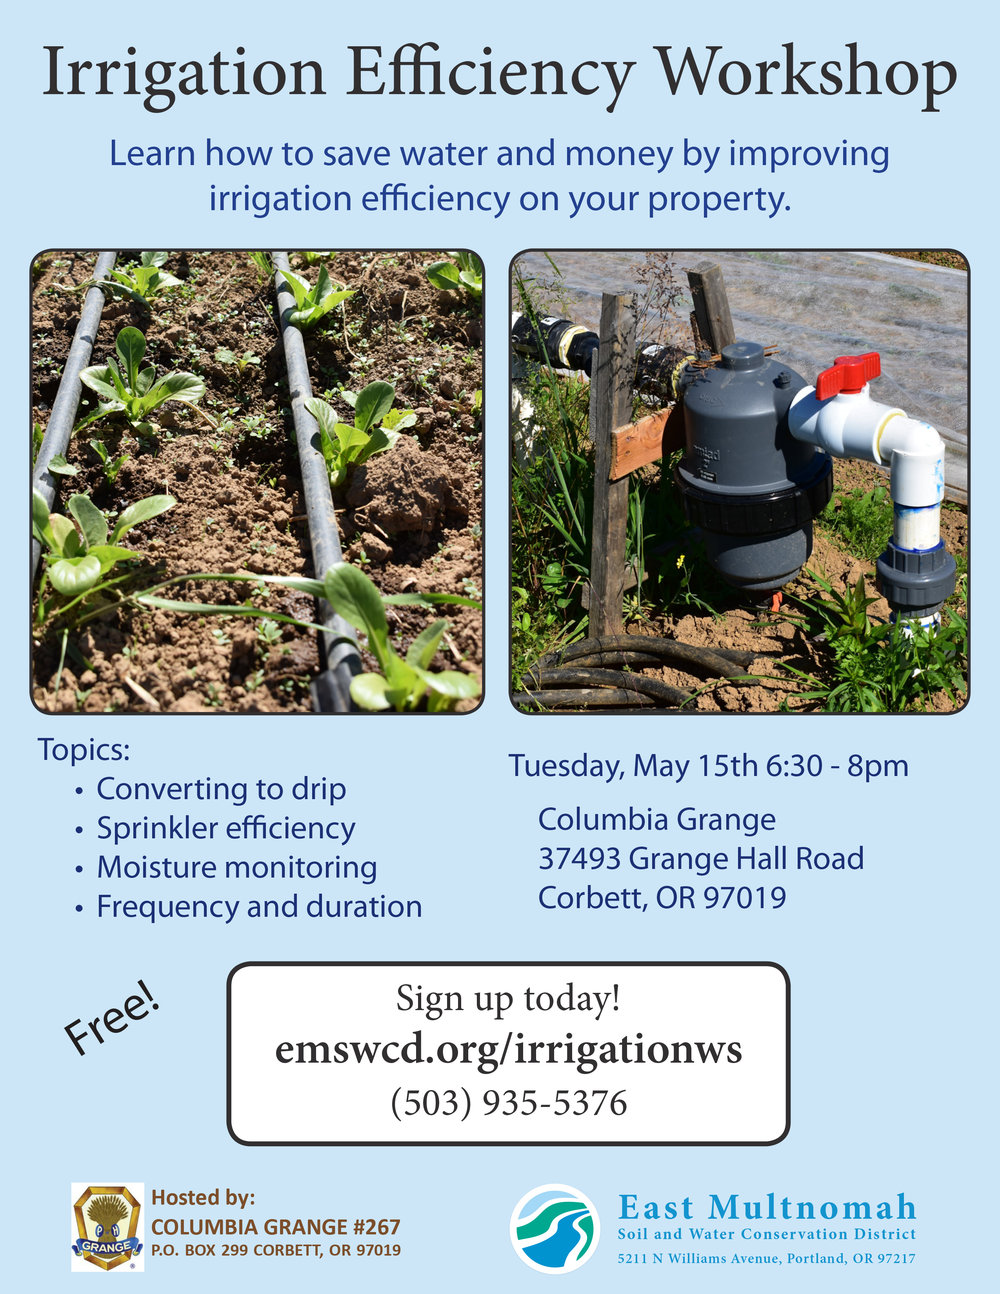 Irrigation workshop flier.jpg